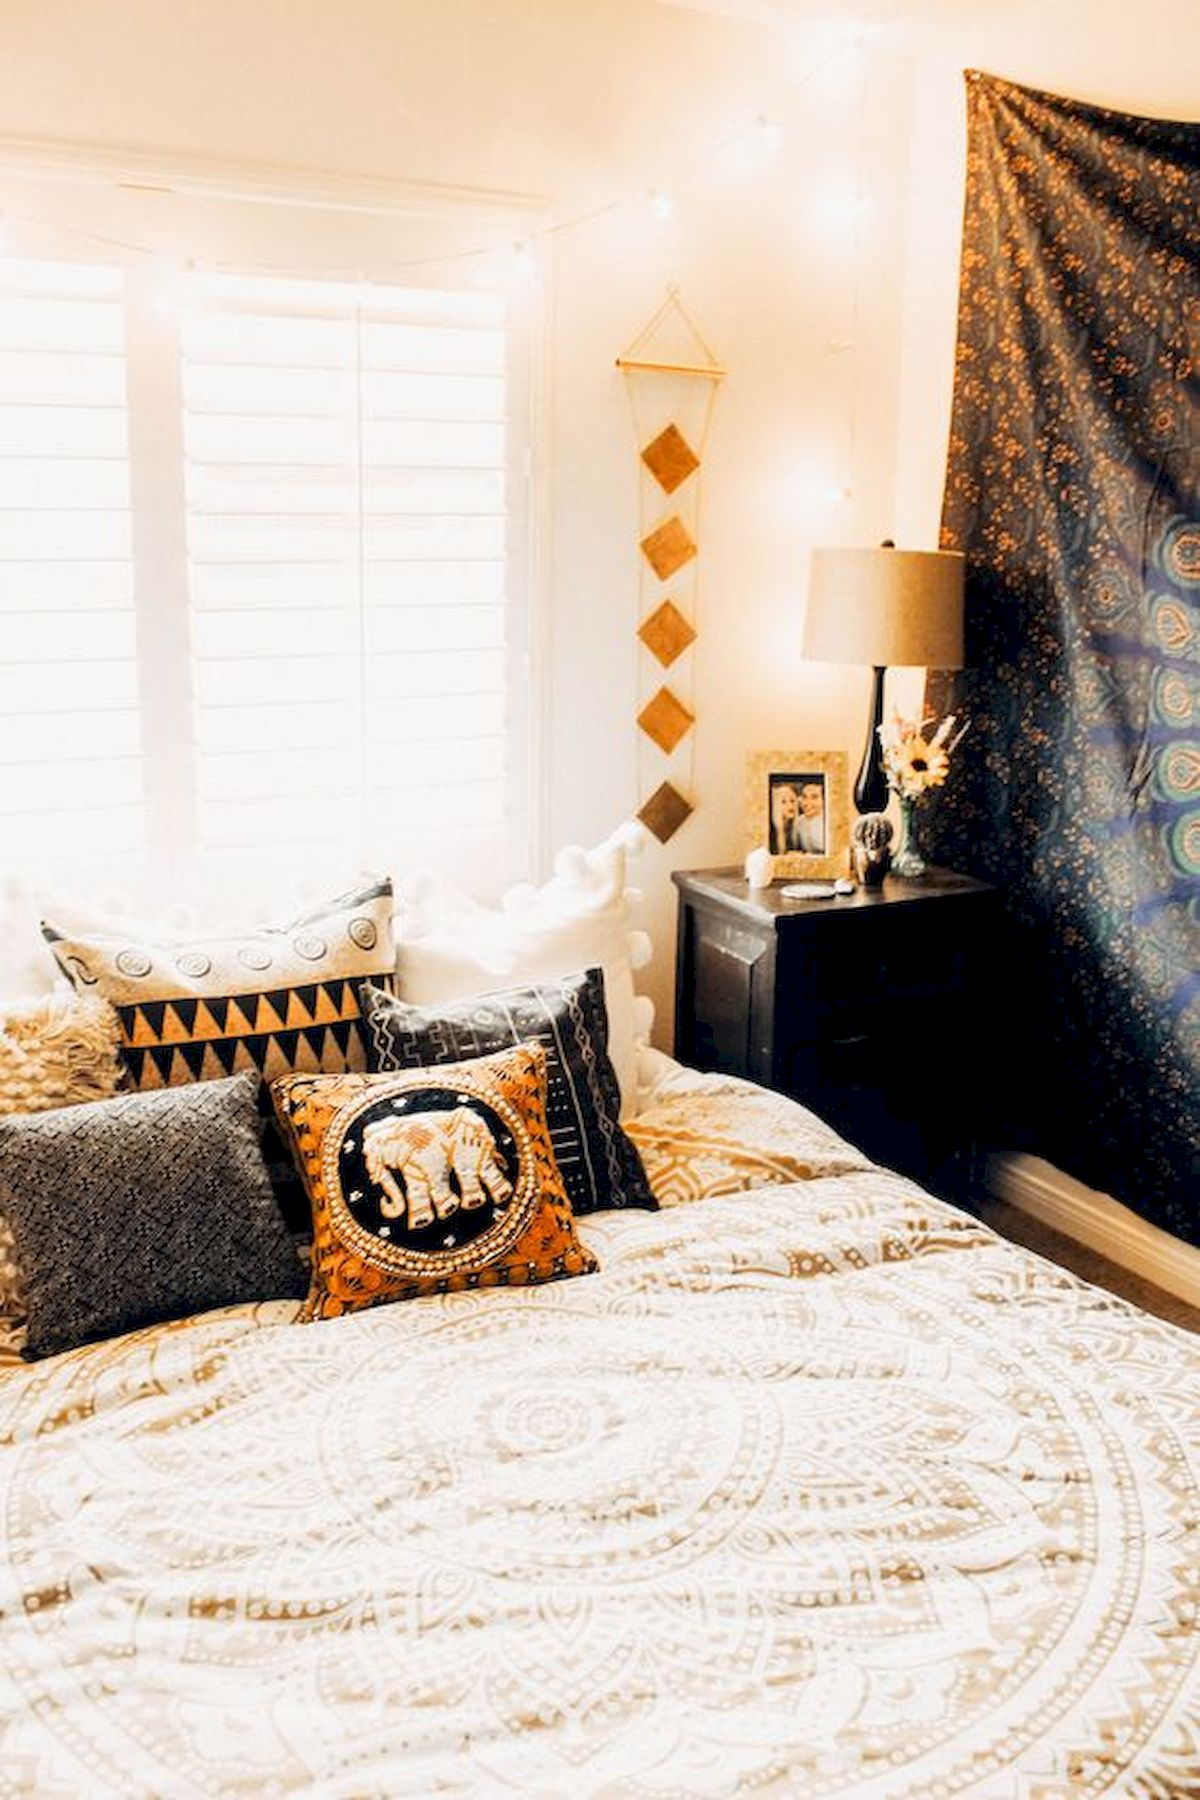 30 Awesome DIY Fall Decoration Ideas For Your Bedroom (29)